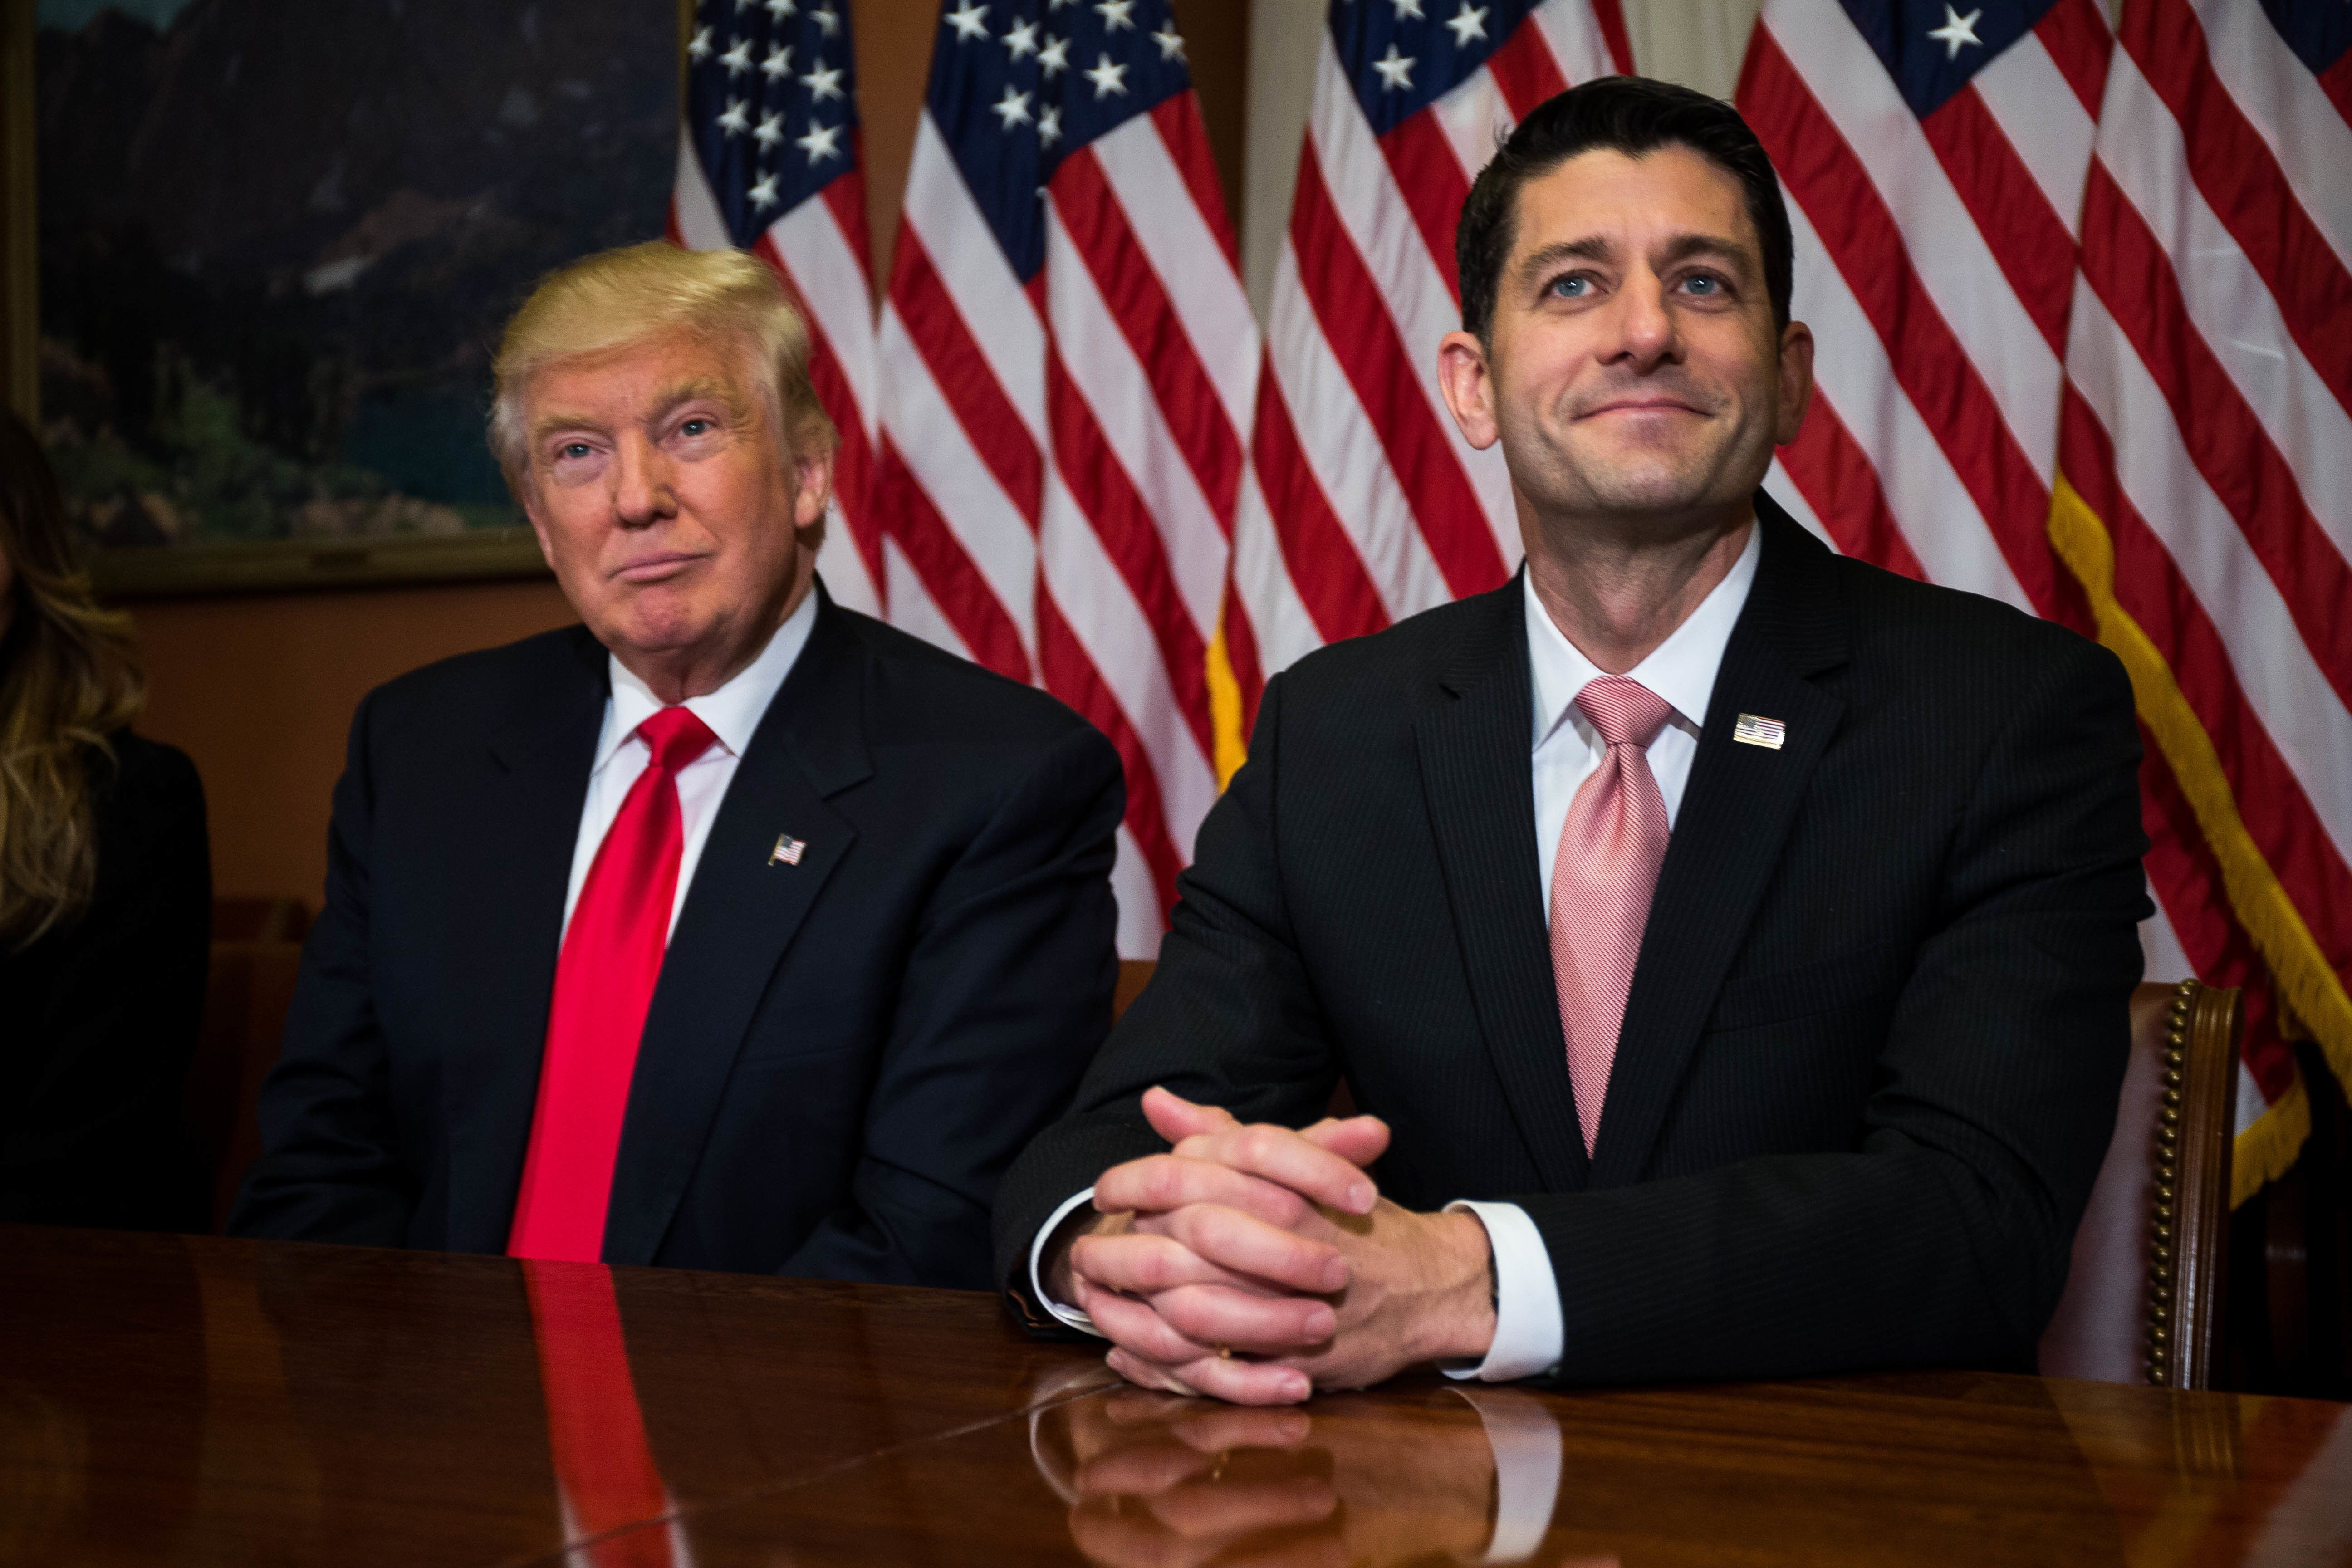 WASHINGTON, D.C. - NOVEMBER 10: President-elect Donald Trump meets with House Speaker Paul Ryan (R-WI) at the U.S. Capitol for a meeting November 10, 2016 in Washington, DC. Earlier in the day president-elect Trump met with U.S. President Barack Obama at the White House. (Photo by Zach Gibson/Getty Images)